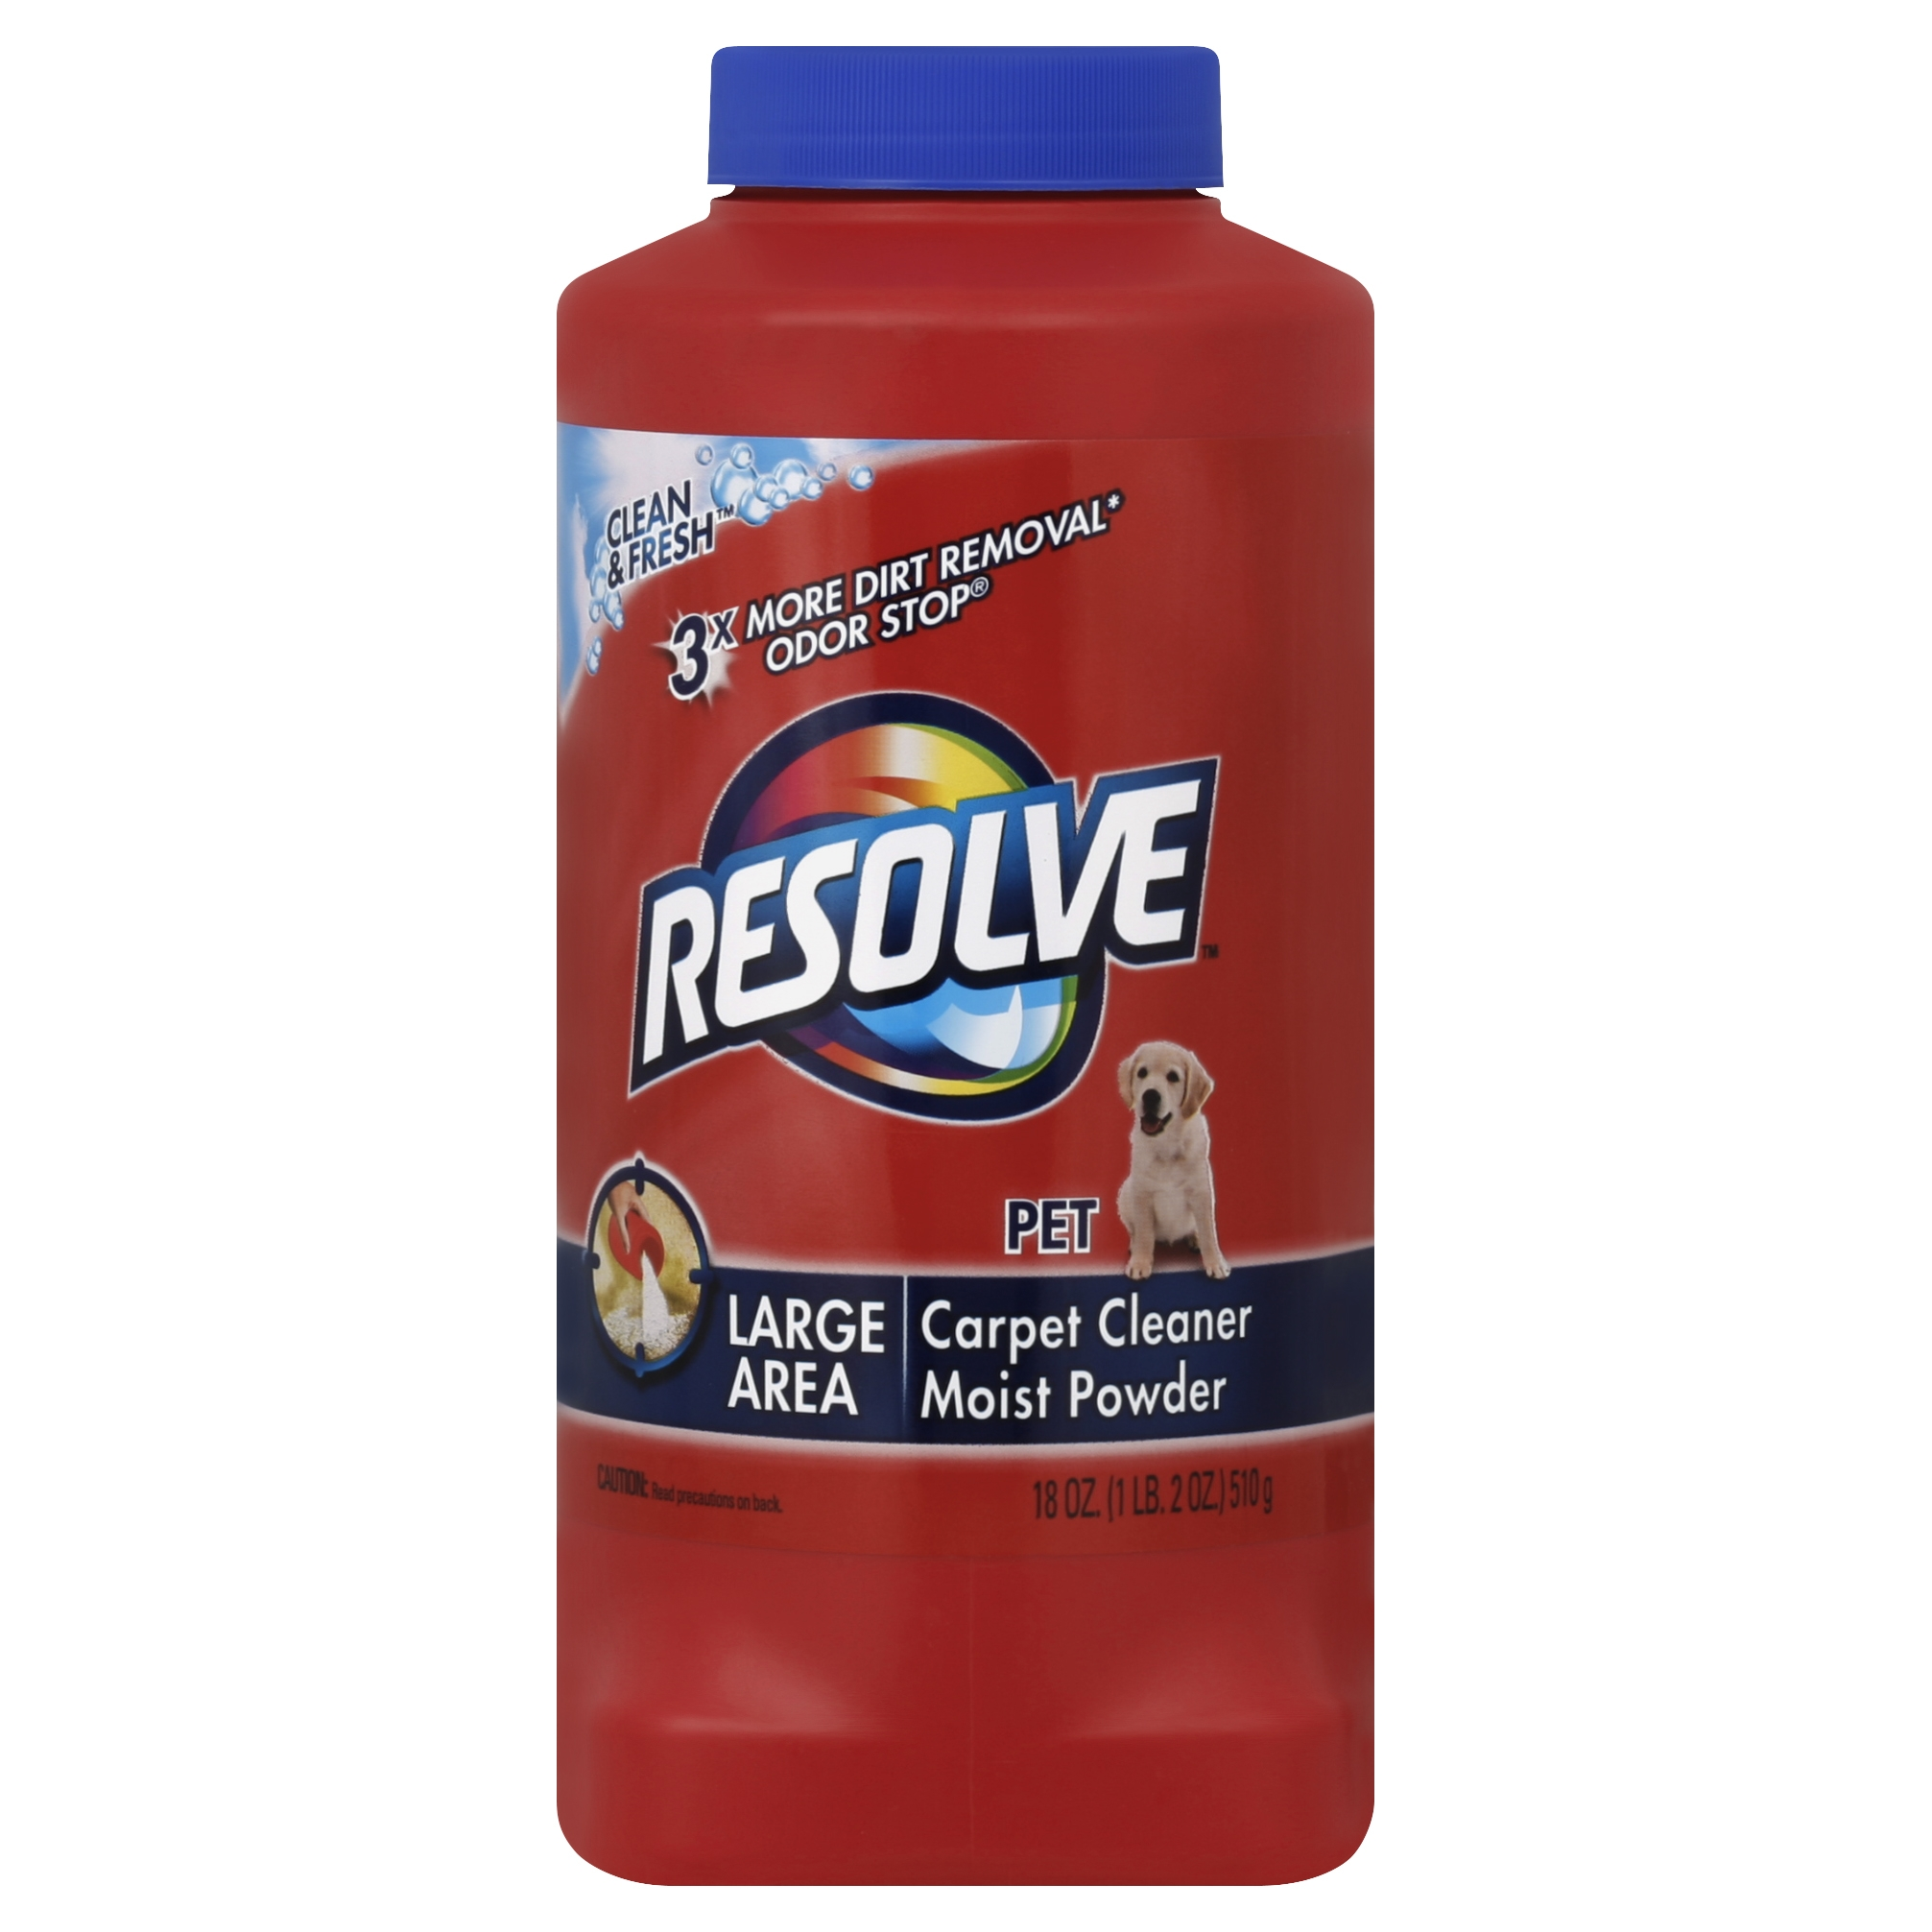 Resolve Pet Formula Carpet Cleaner Moist Powder, 18 Ounce